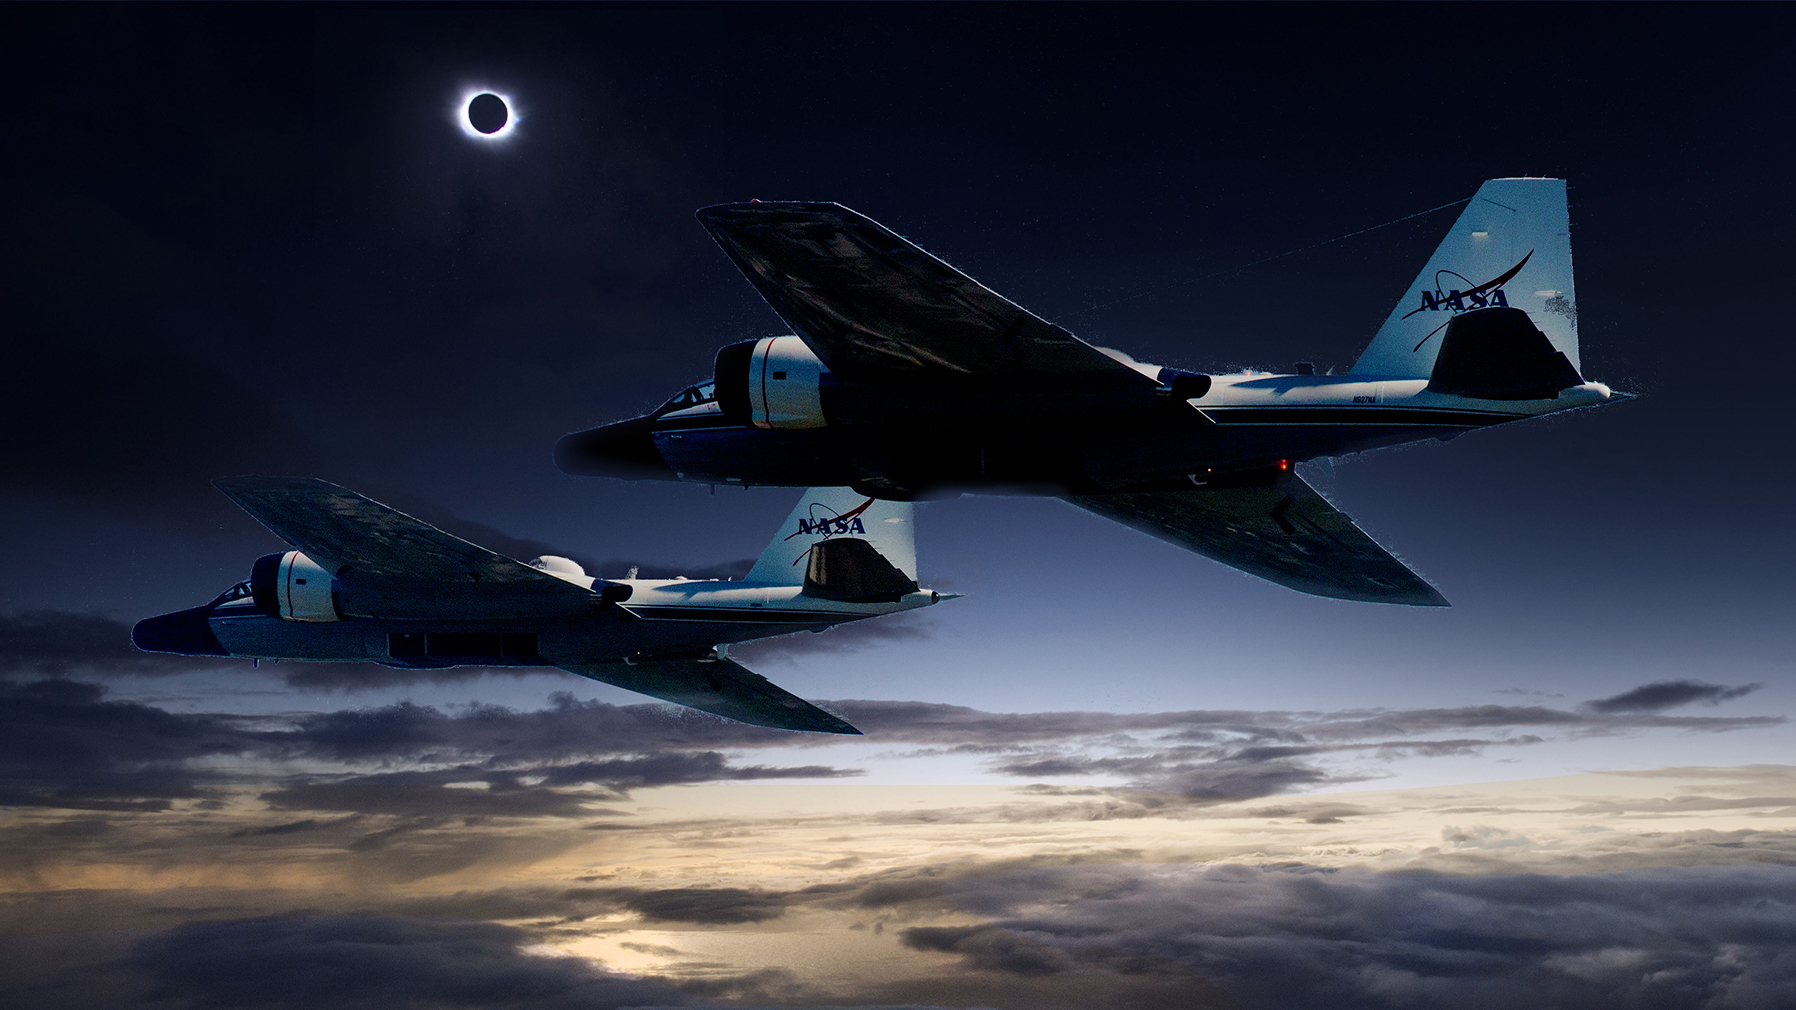 NASA Jets Will Extend Eclipse By Chasing Moon's Shadow ...